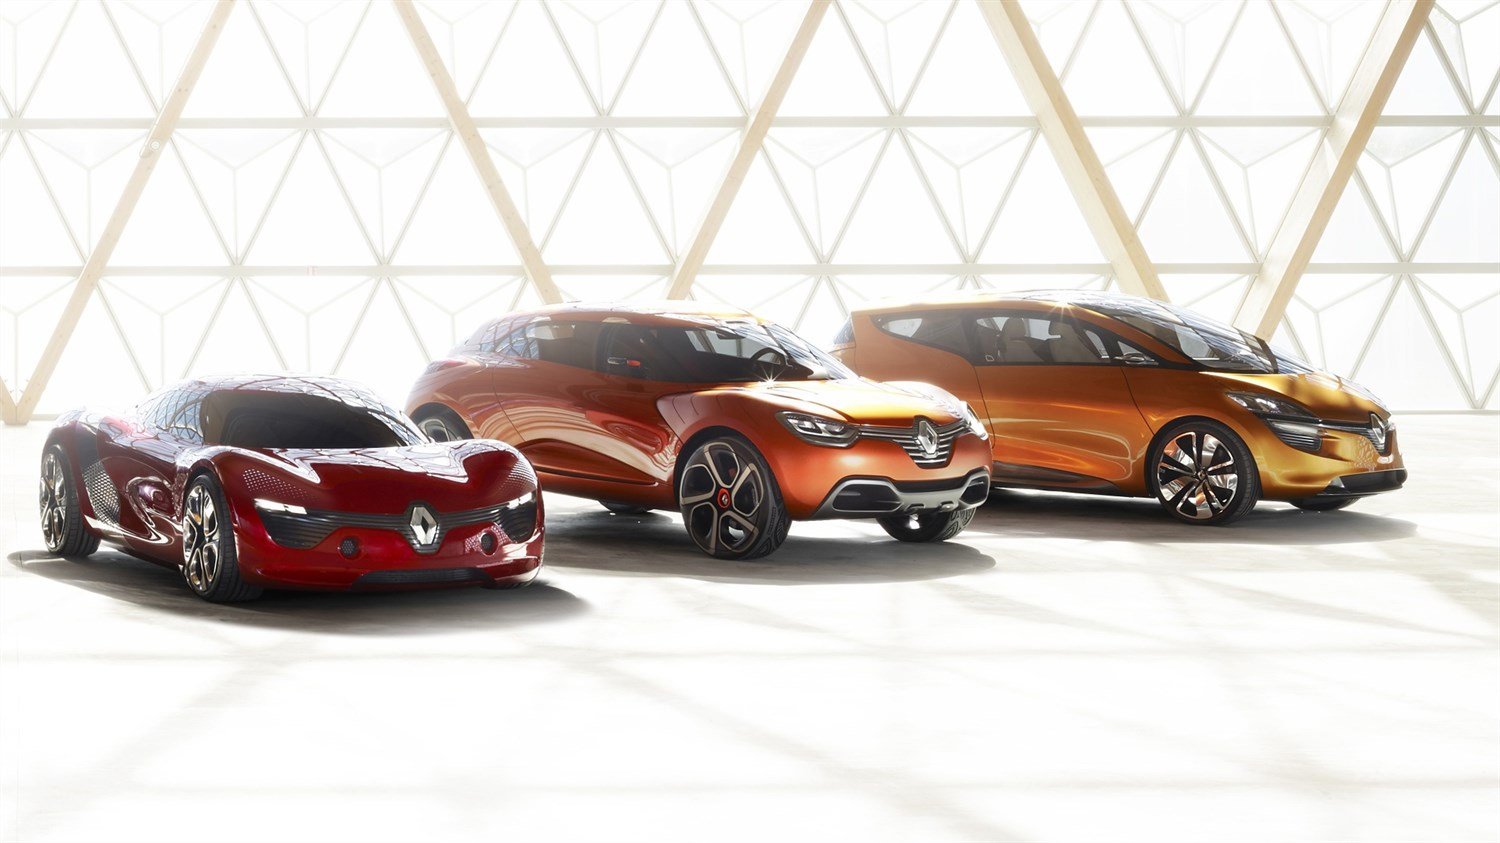 Renault - concept cars range - 3 vehicles 3/4 right front end view